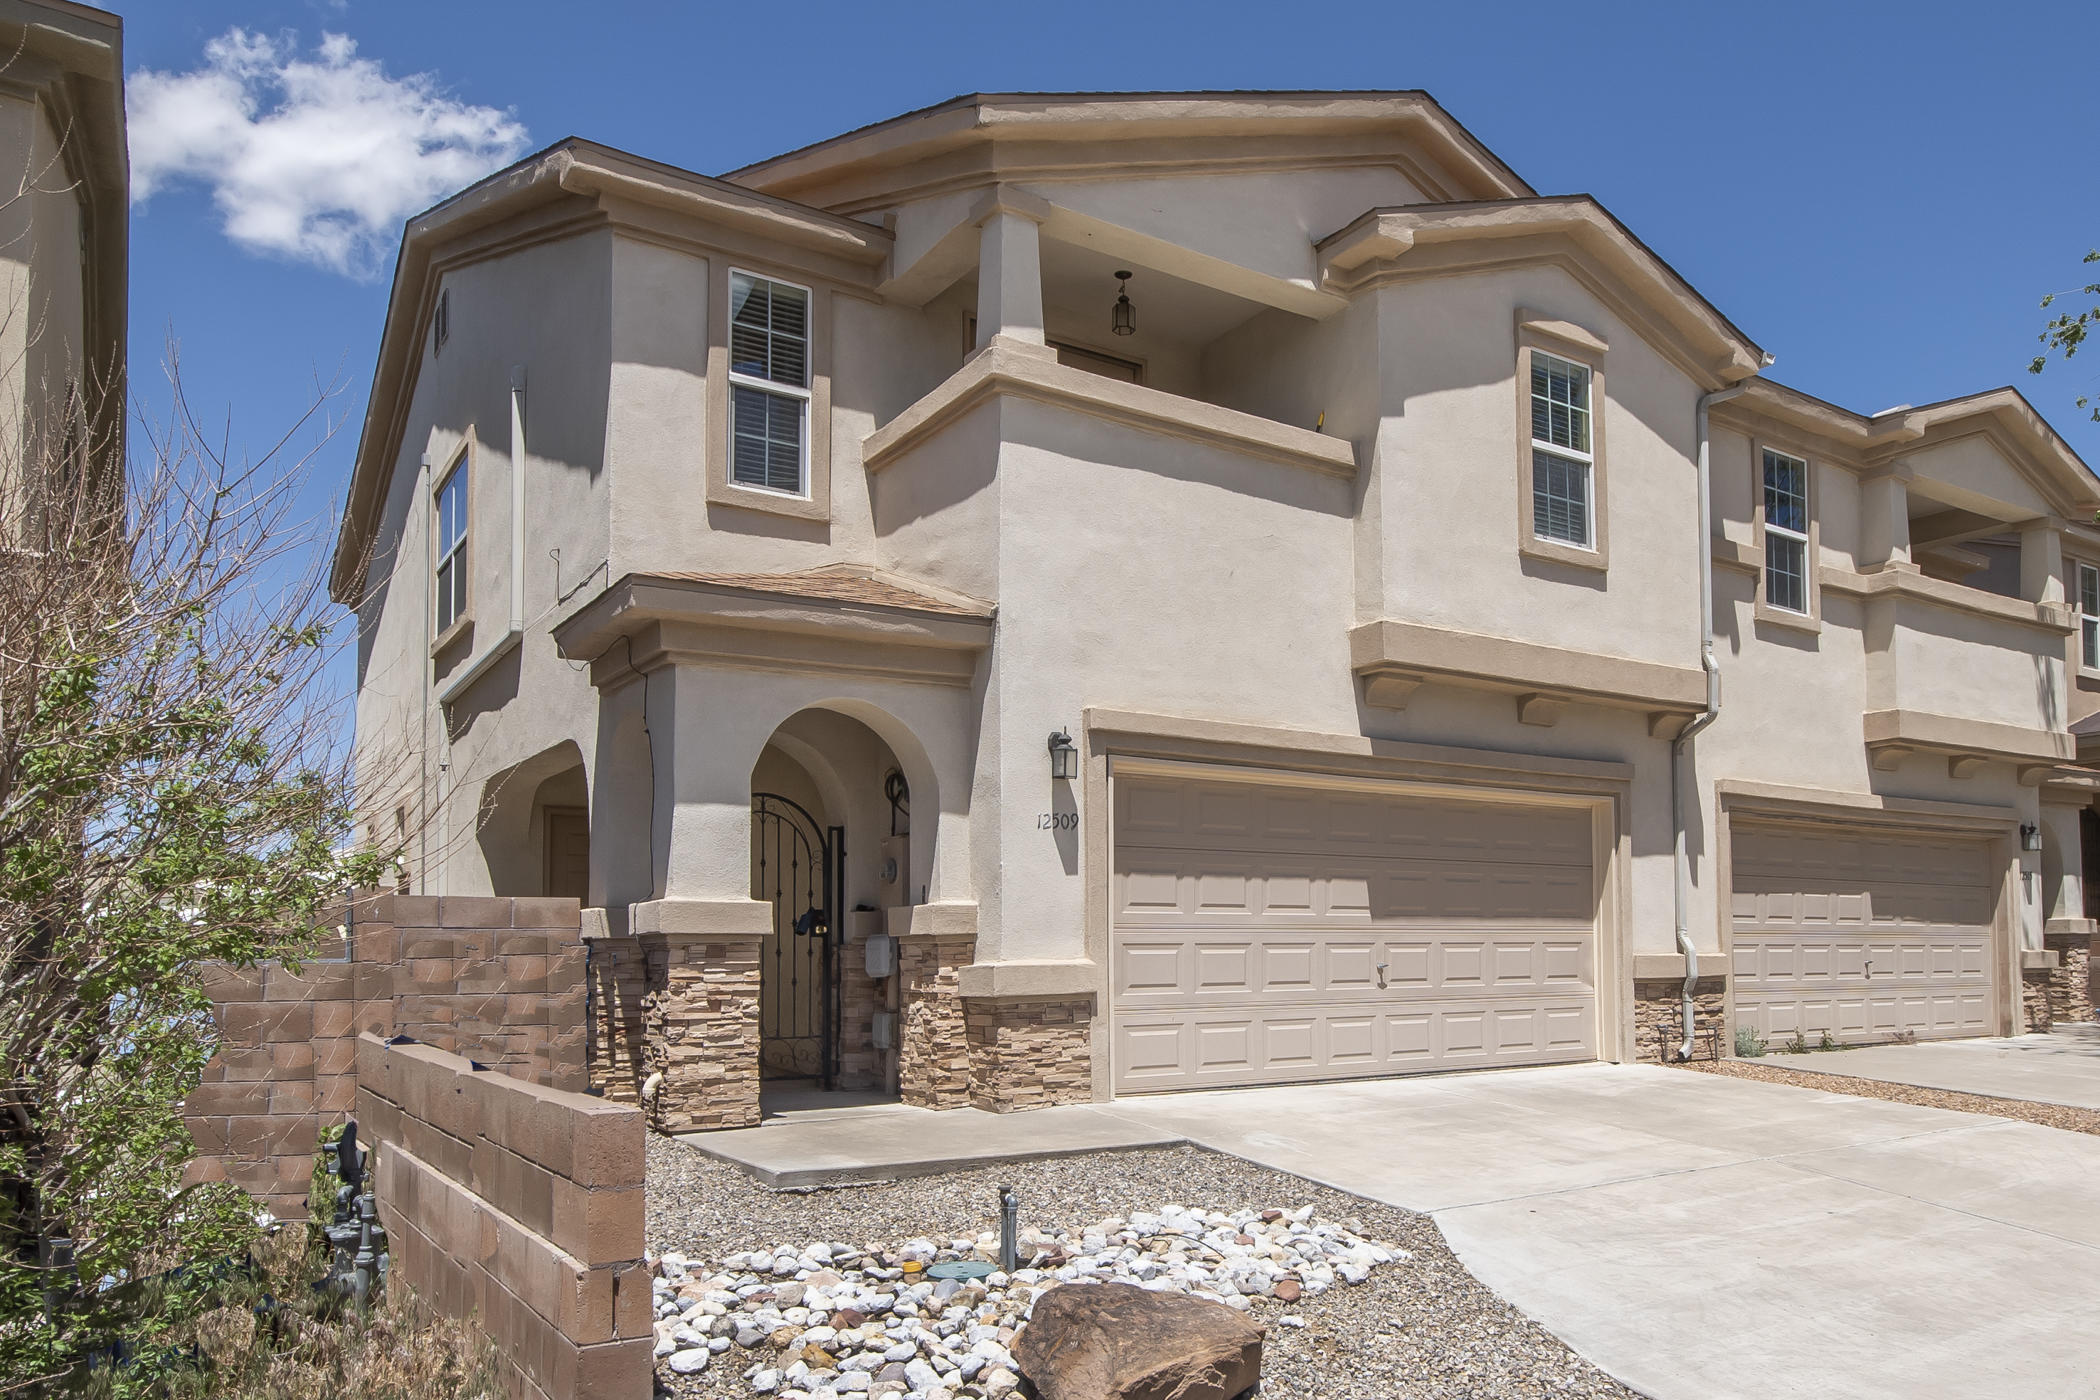 Come see this nicely maintained Beazer townhome, located a couple minute walk to the the Tramway hiking/biking trails.  First level features a great room with fireplace, tile floors, an open eat-in bar, dining area that opens to a private low maintenance backyard. The Kitchen features SS appliances, hard surface countertops,  and is adjacent to the laundry, half bath, and garage access.  Upper level boasts a second living area, three bedrooms and two baths, including the owner's ensuite, which offers a large wet area w/ separate soaking tub/ shower, two sinks, walkin closet, dressing area, and a cozy covered patio with views. NEW ROOF 2020 (approx), New HWH 2018 (approx) This townhome offers a great lifestyle for the $$.